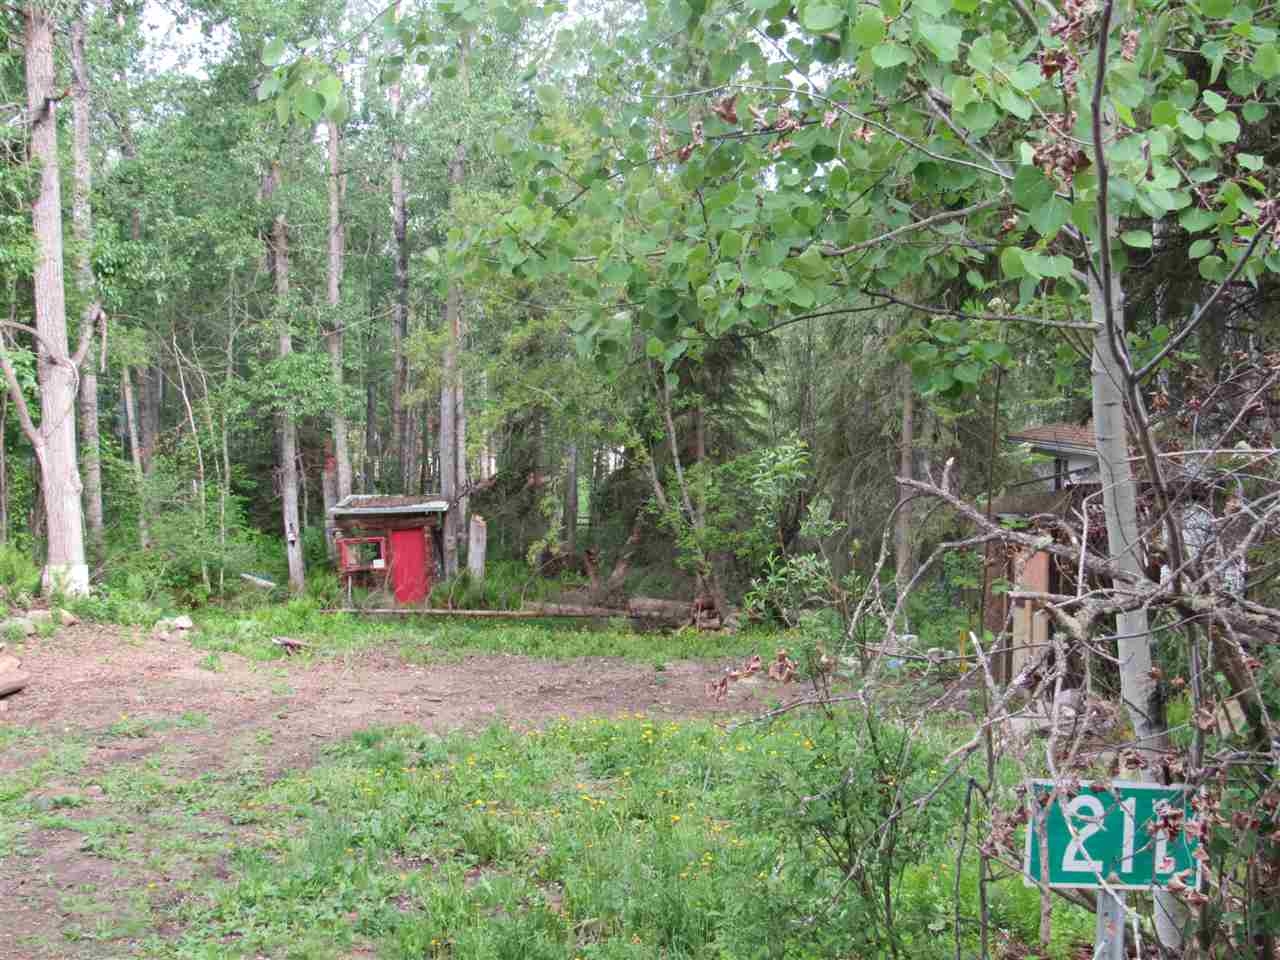 5415 TWP RD 594 LOT 211, at $78,500